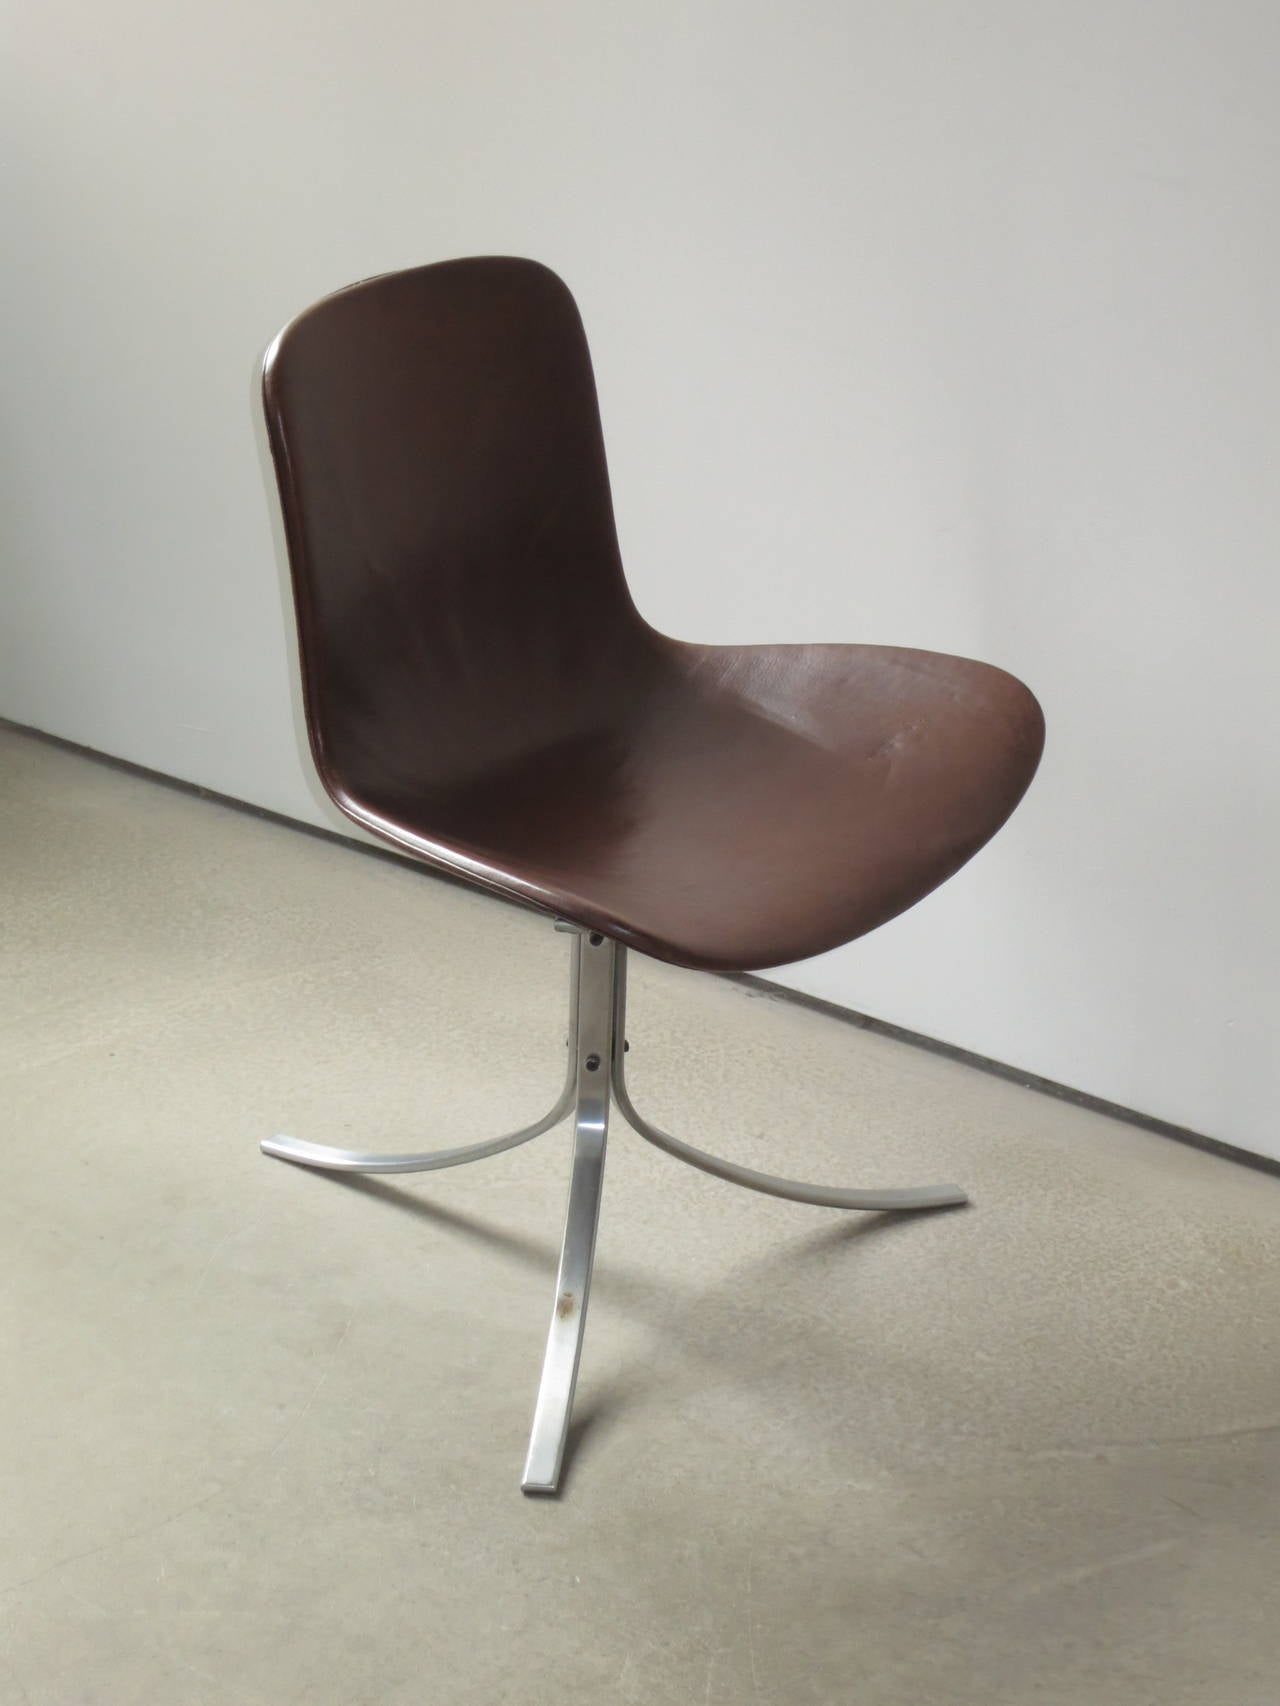 PK-9 Chair by Poul Kjærholm in patinated brown leather. Designed in 1960 and considered one of Kjærholm's masterpieces as well as a masterpiece among all 20th century chairs, the leather seat and back of this chair floats on three beautifully curved